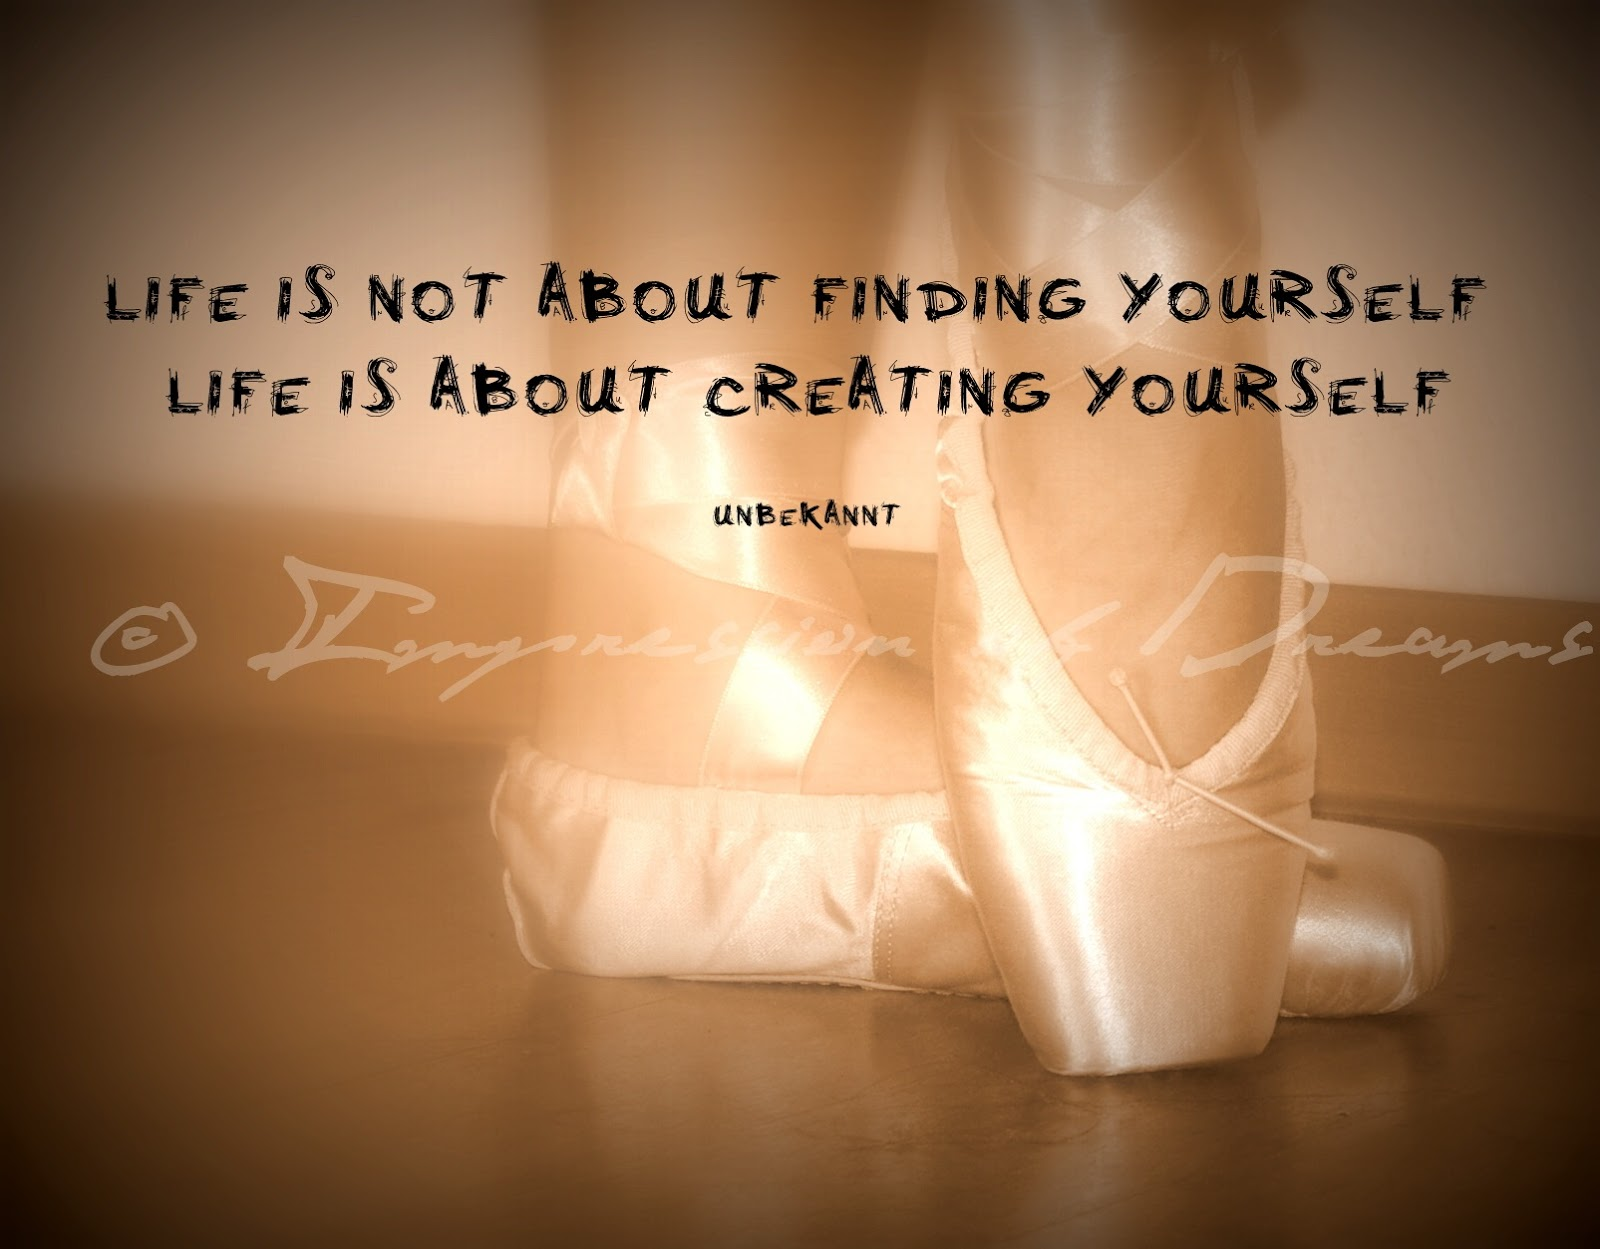 Life is not about finding yourself. Life is about creating yourself.